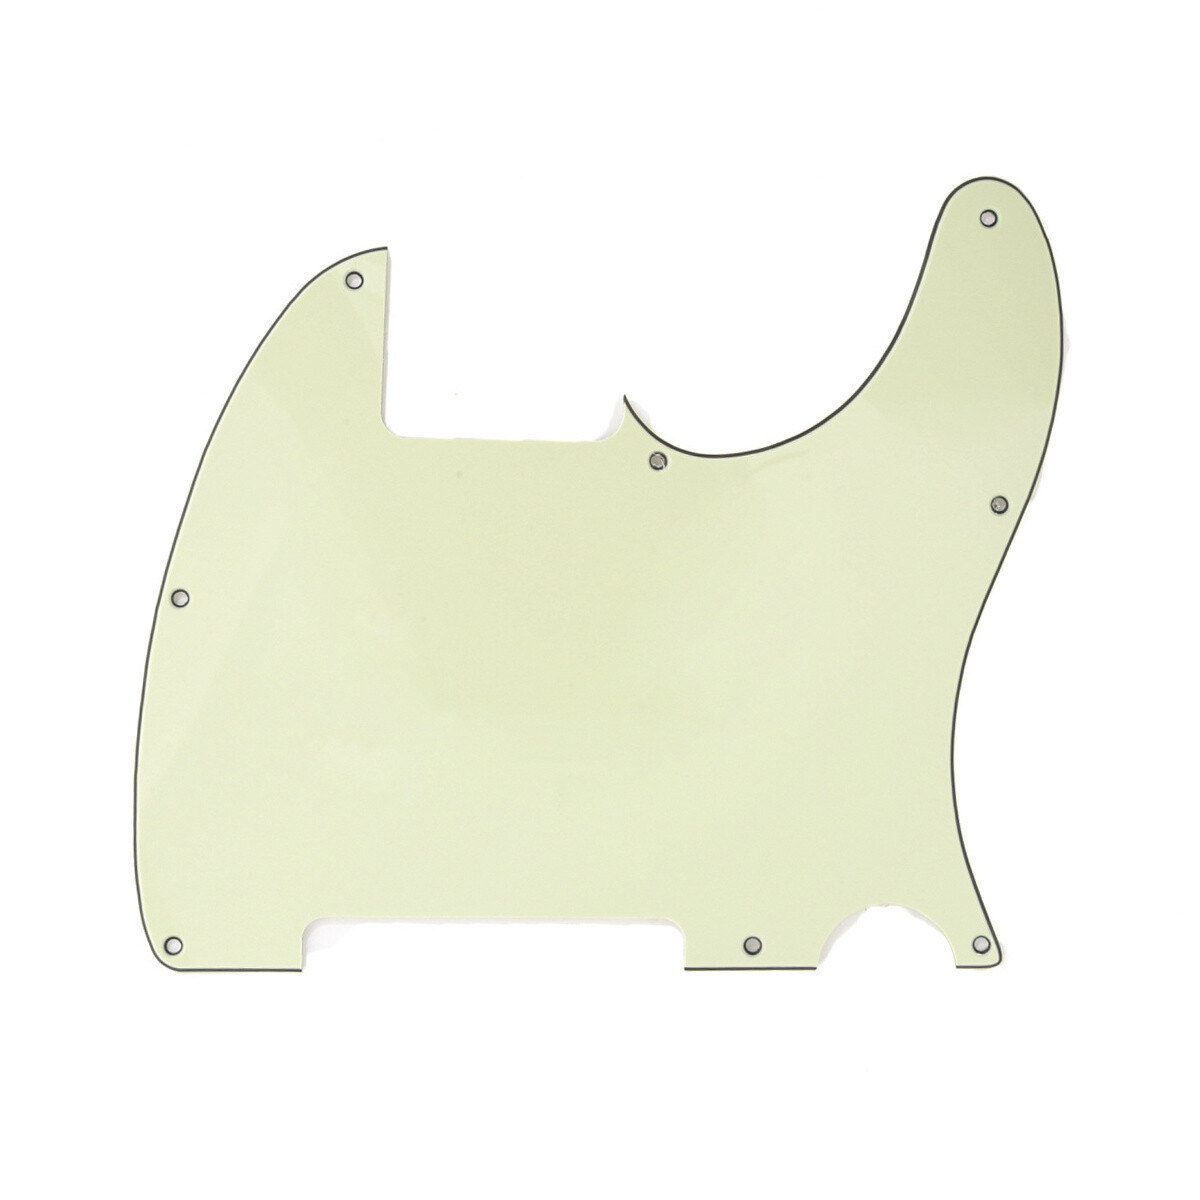 Carparelli Vintage Esquire 8 Hole Tele® Pickguard RH 3 Ply Mint Green